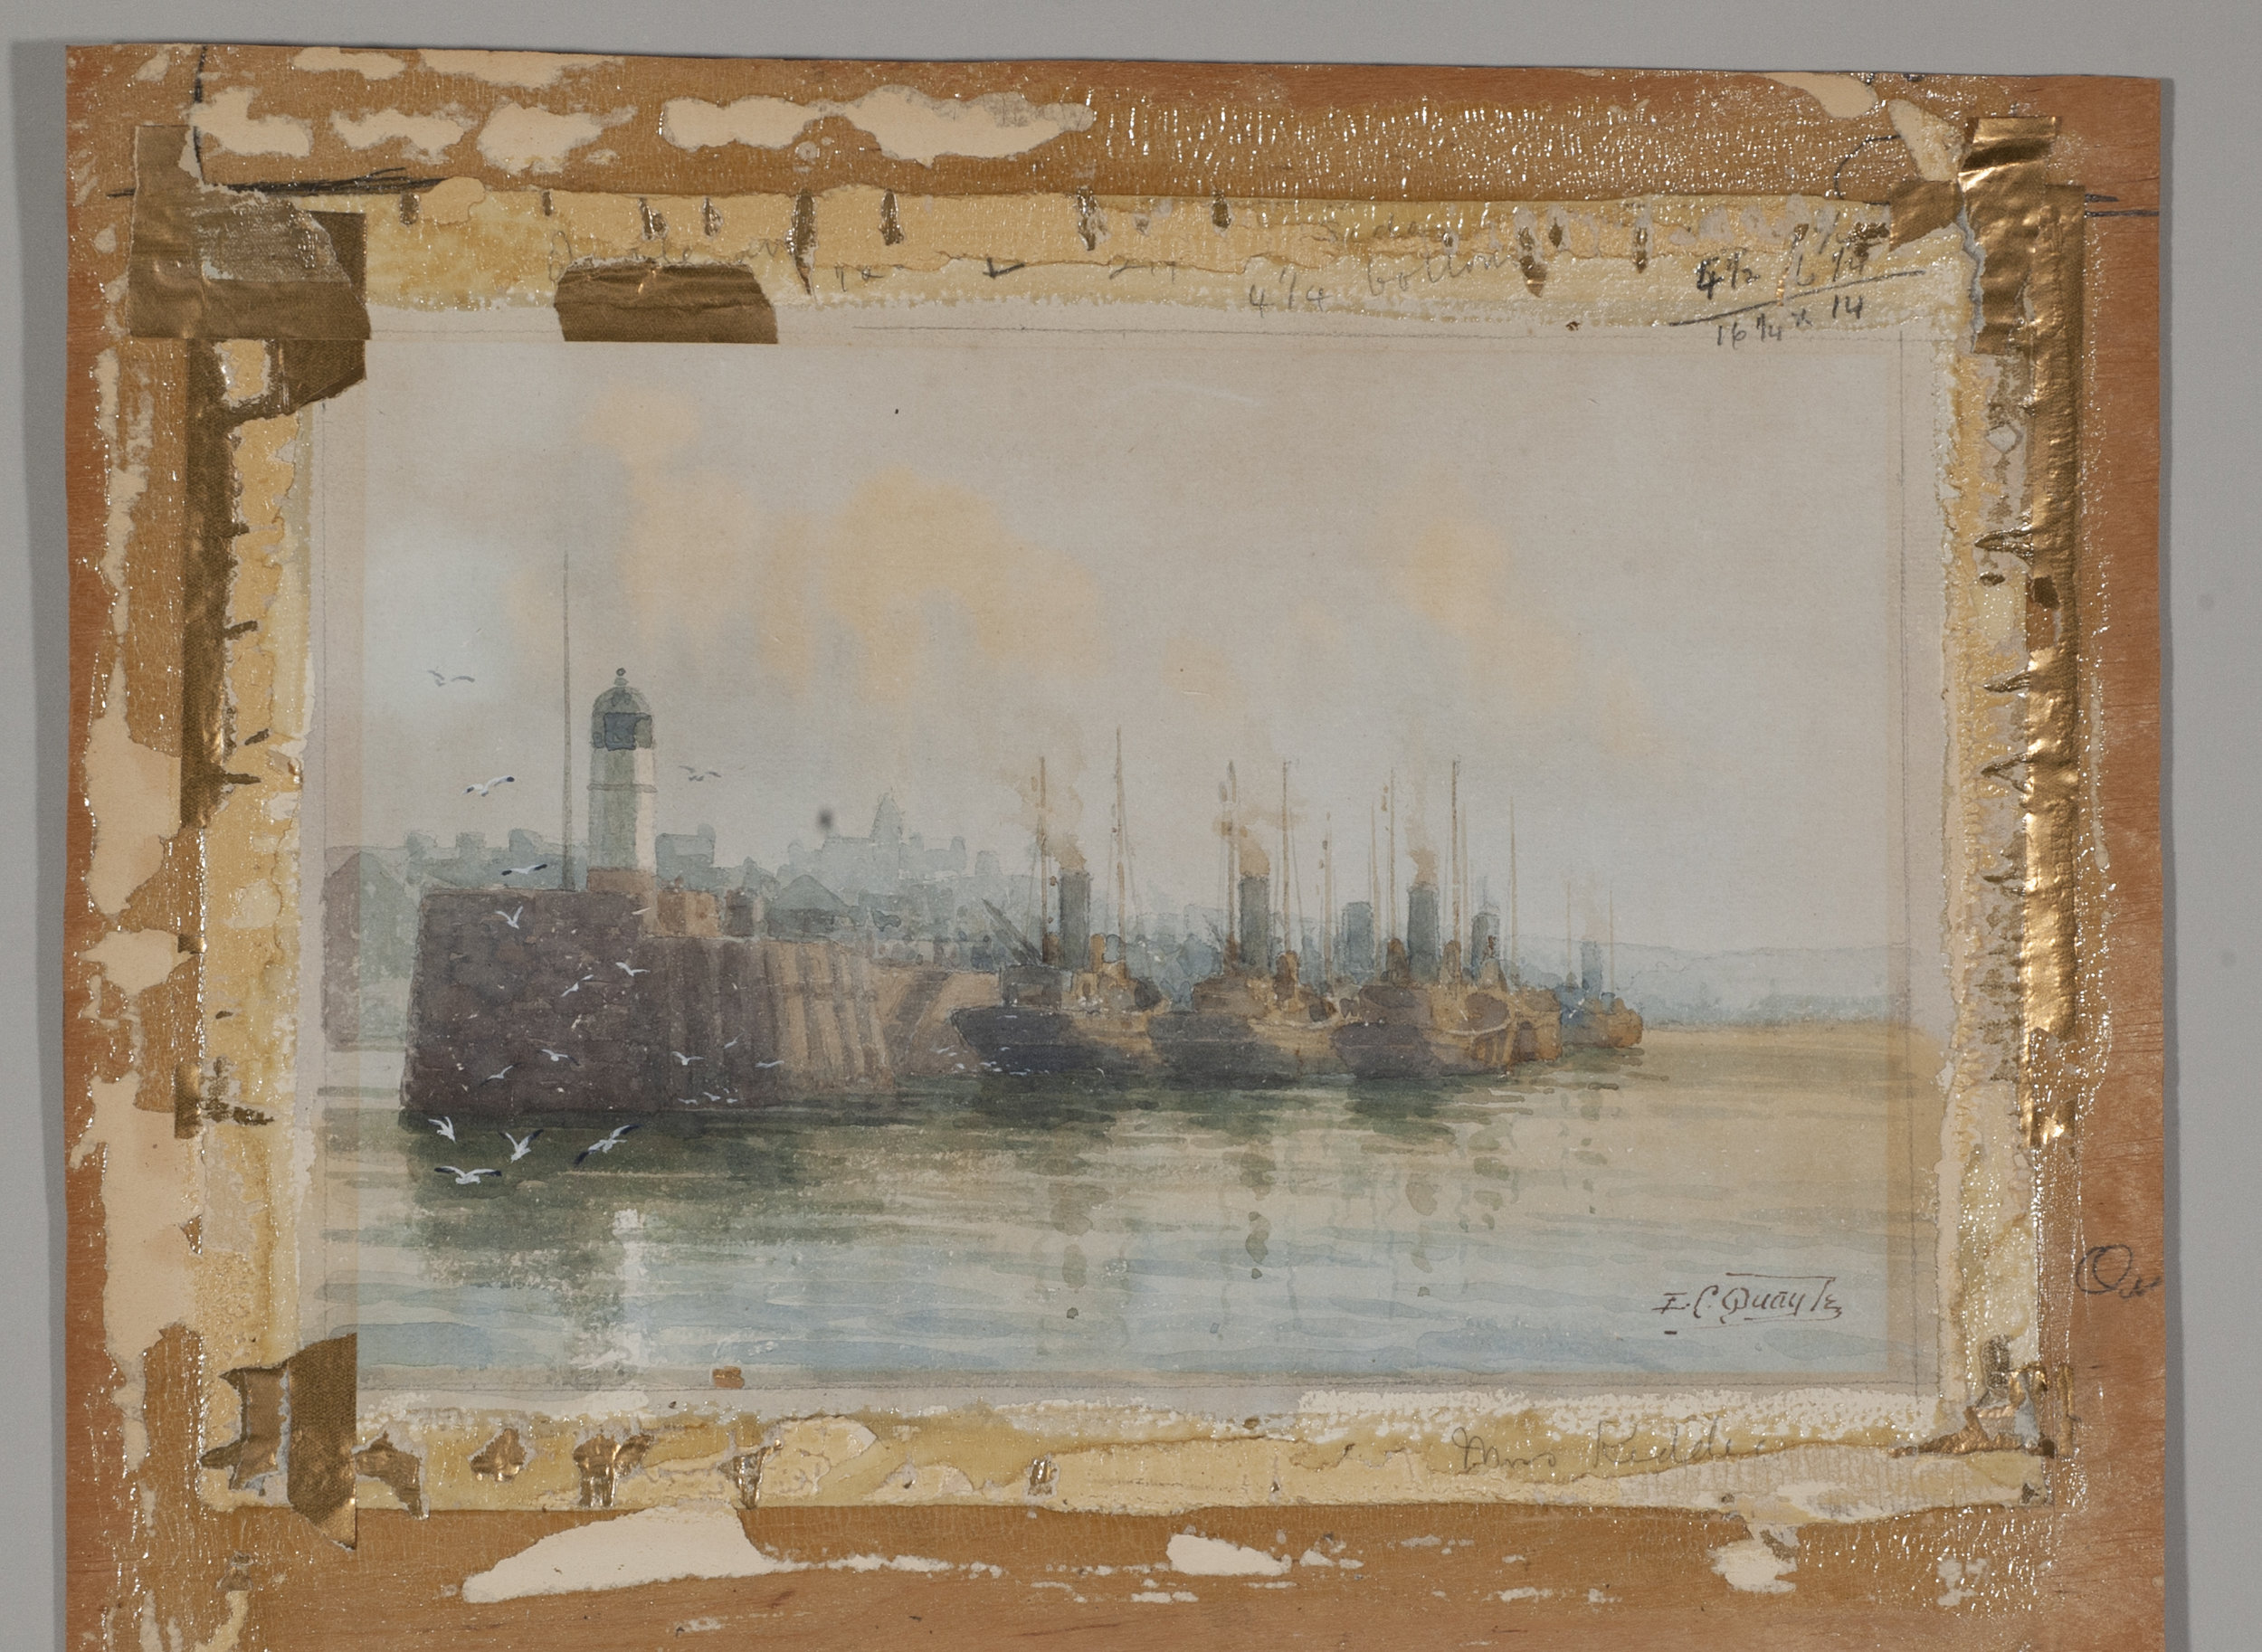 1917 watercolor mounted to wooden board adhered with hide glue